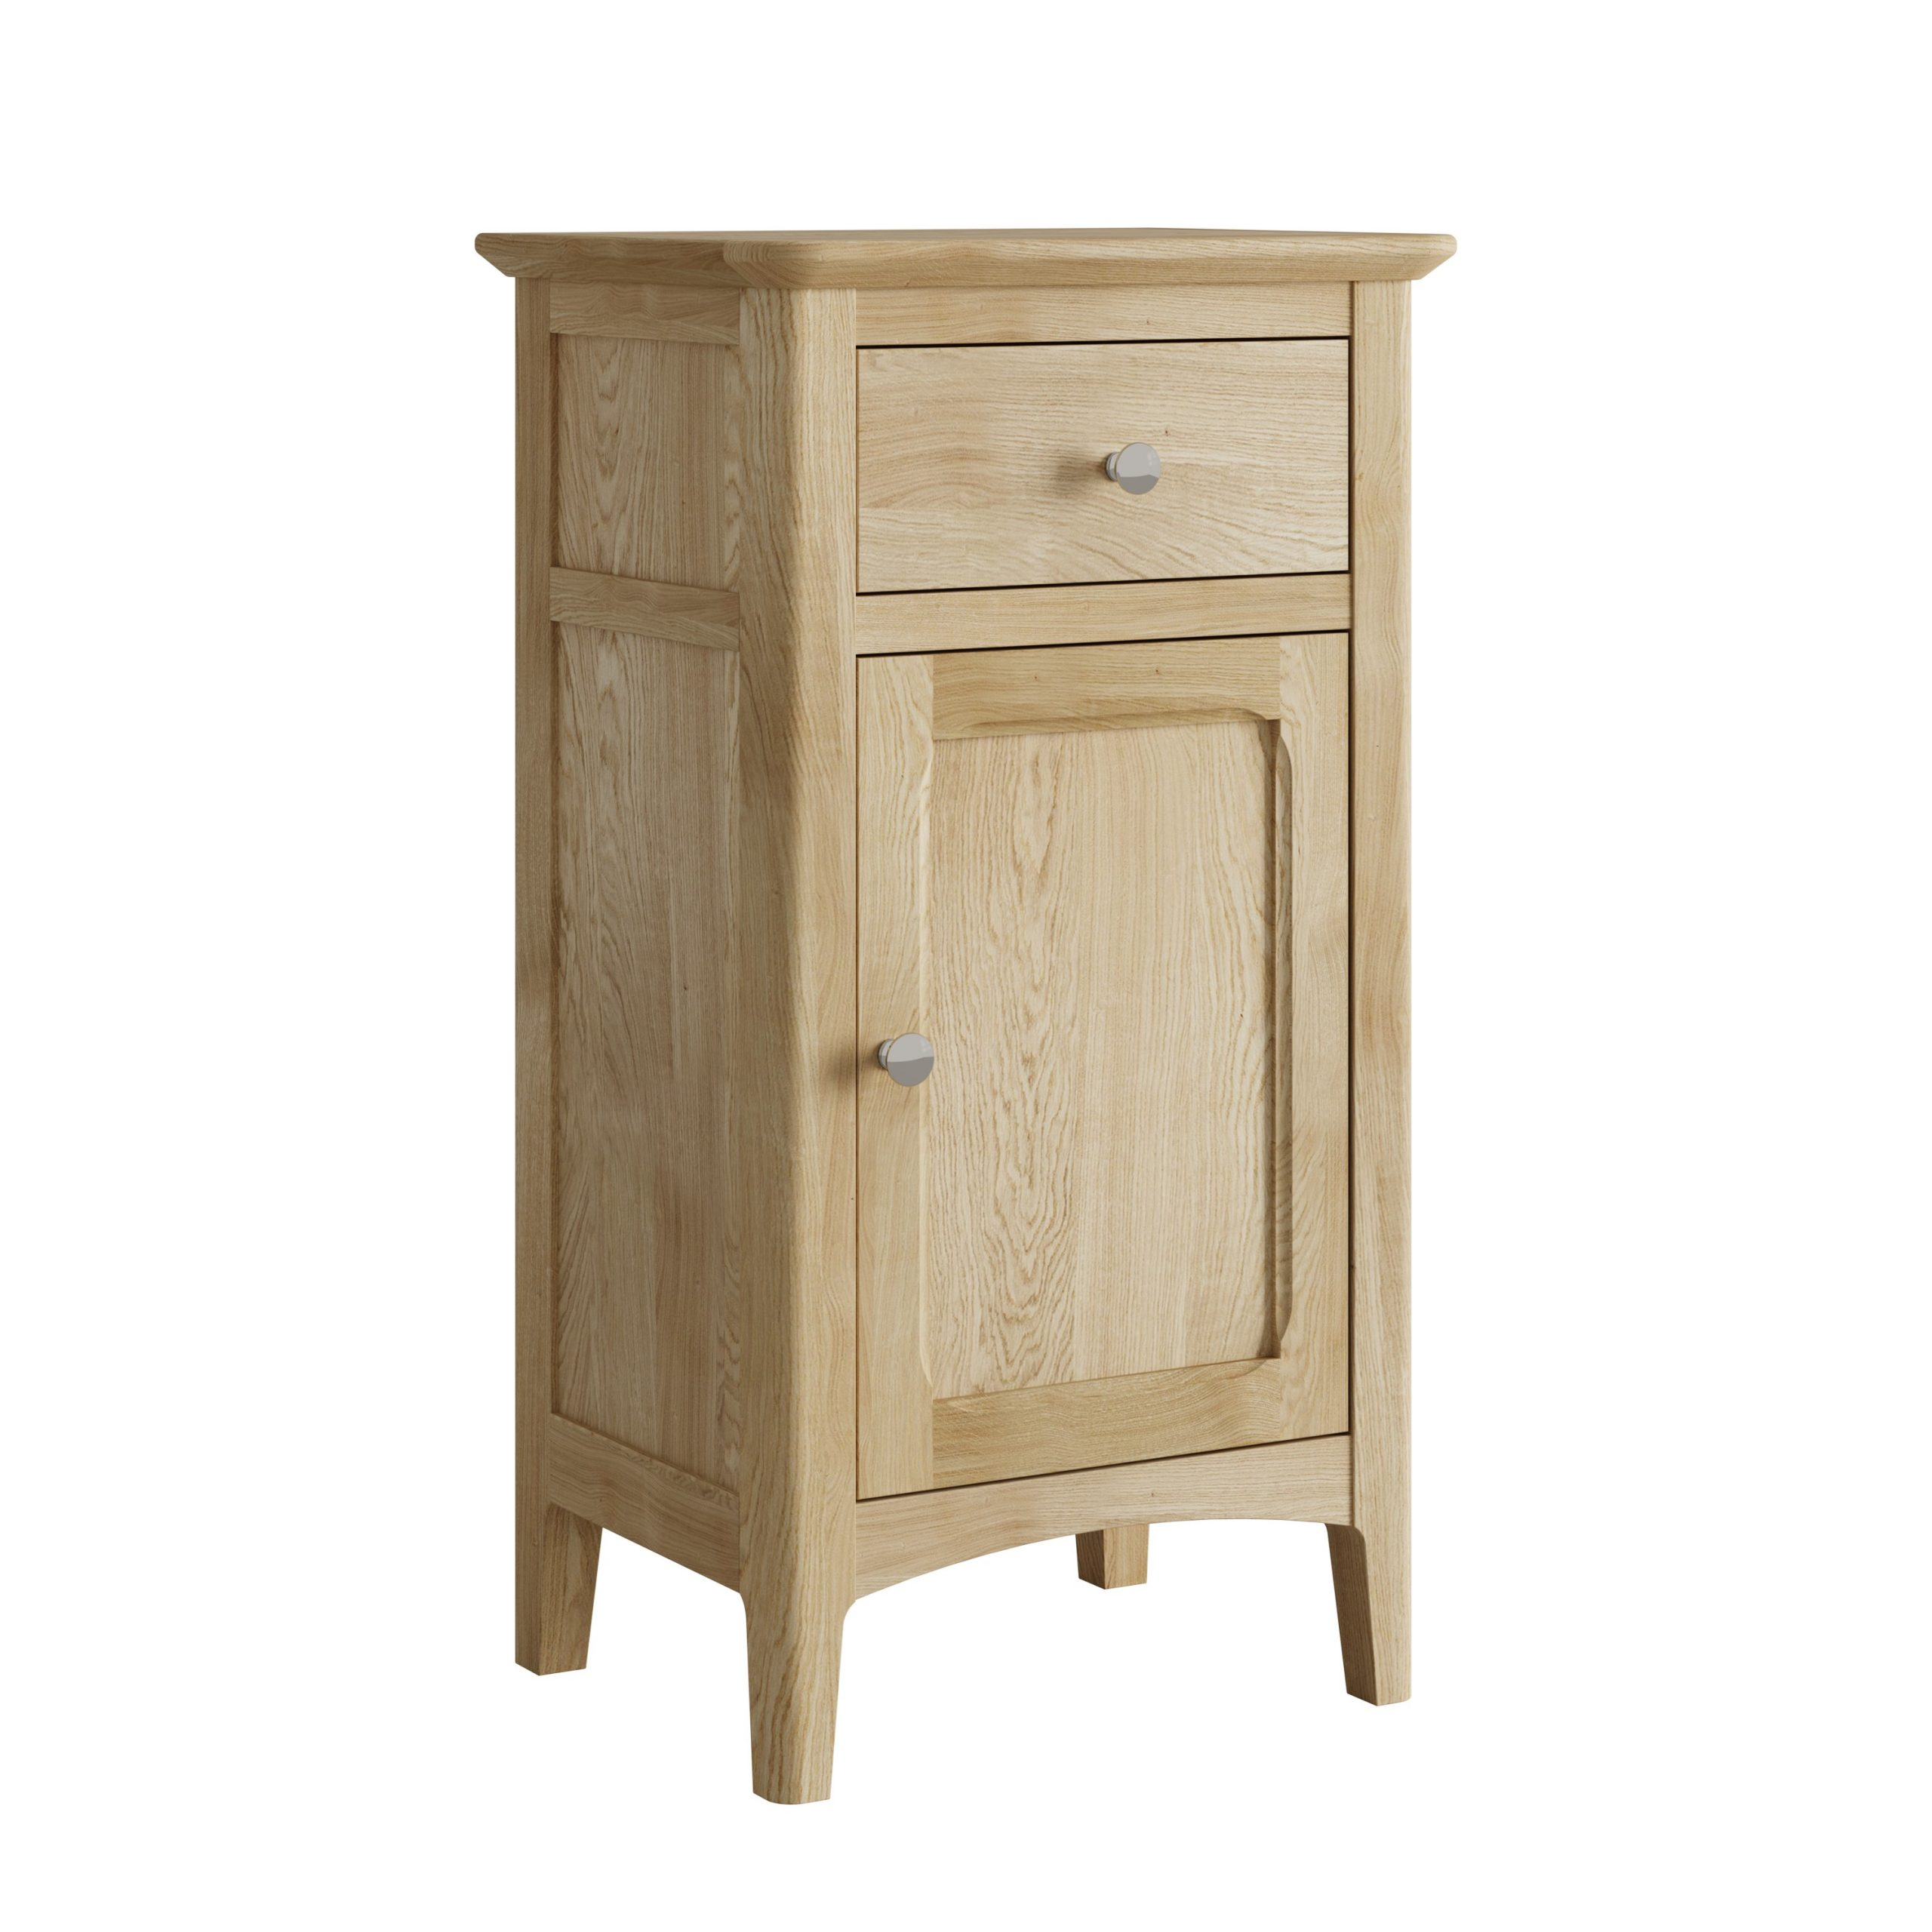 Oak Single Door Sideboard - Our Price - Only £229